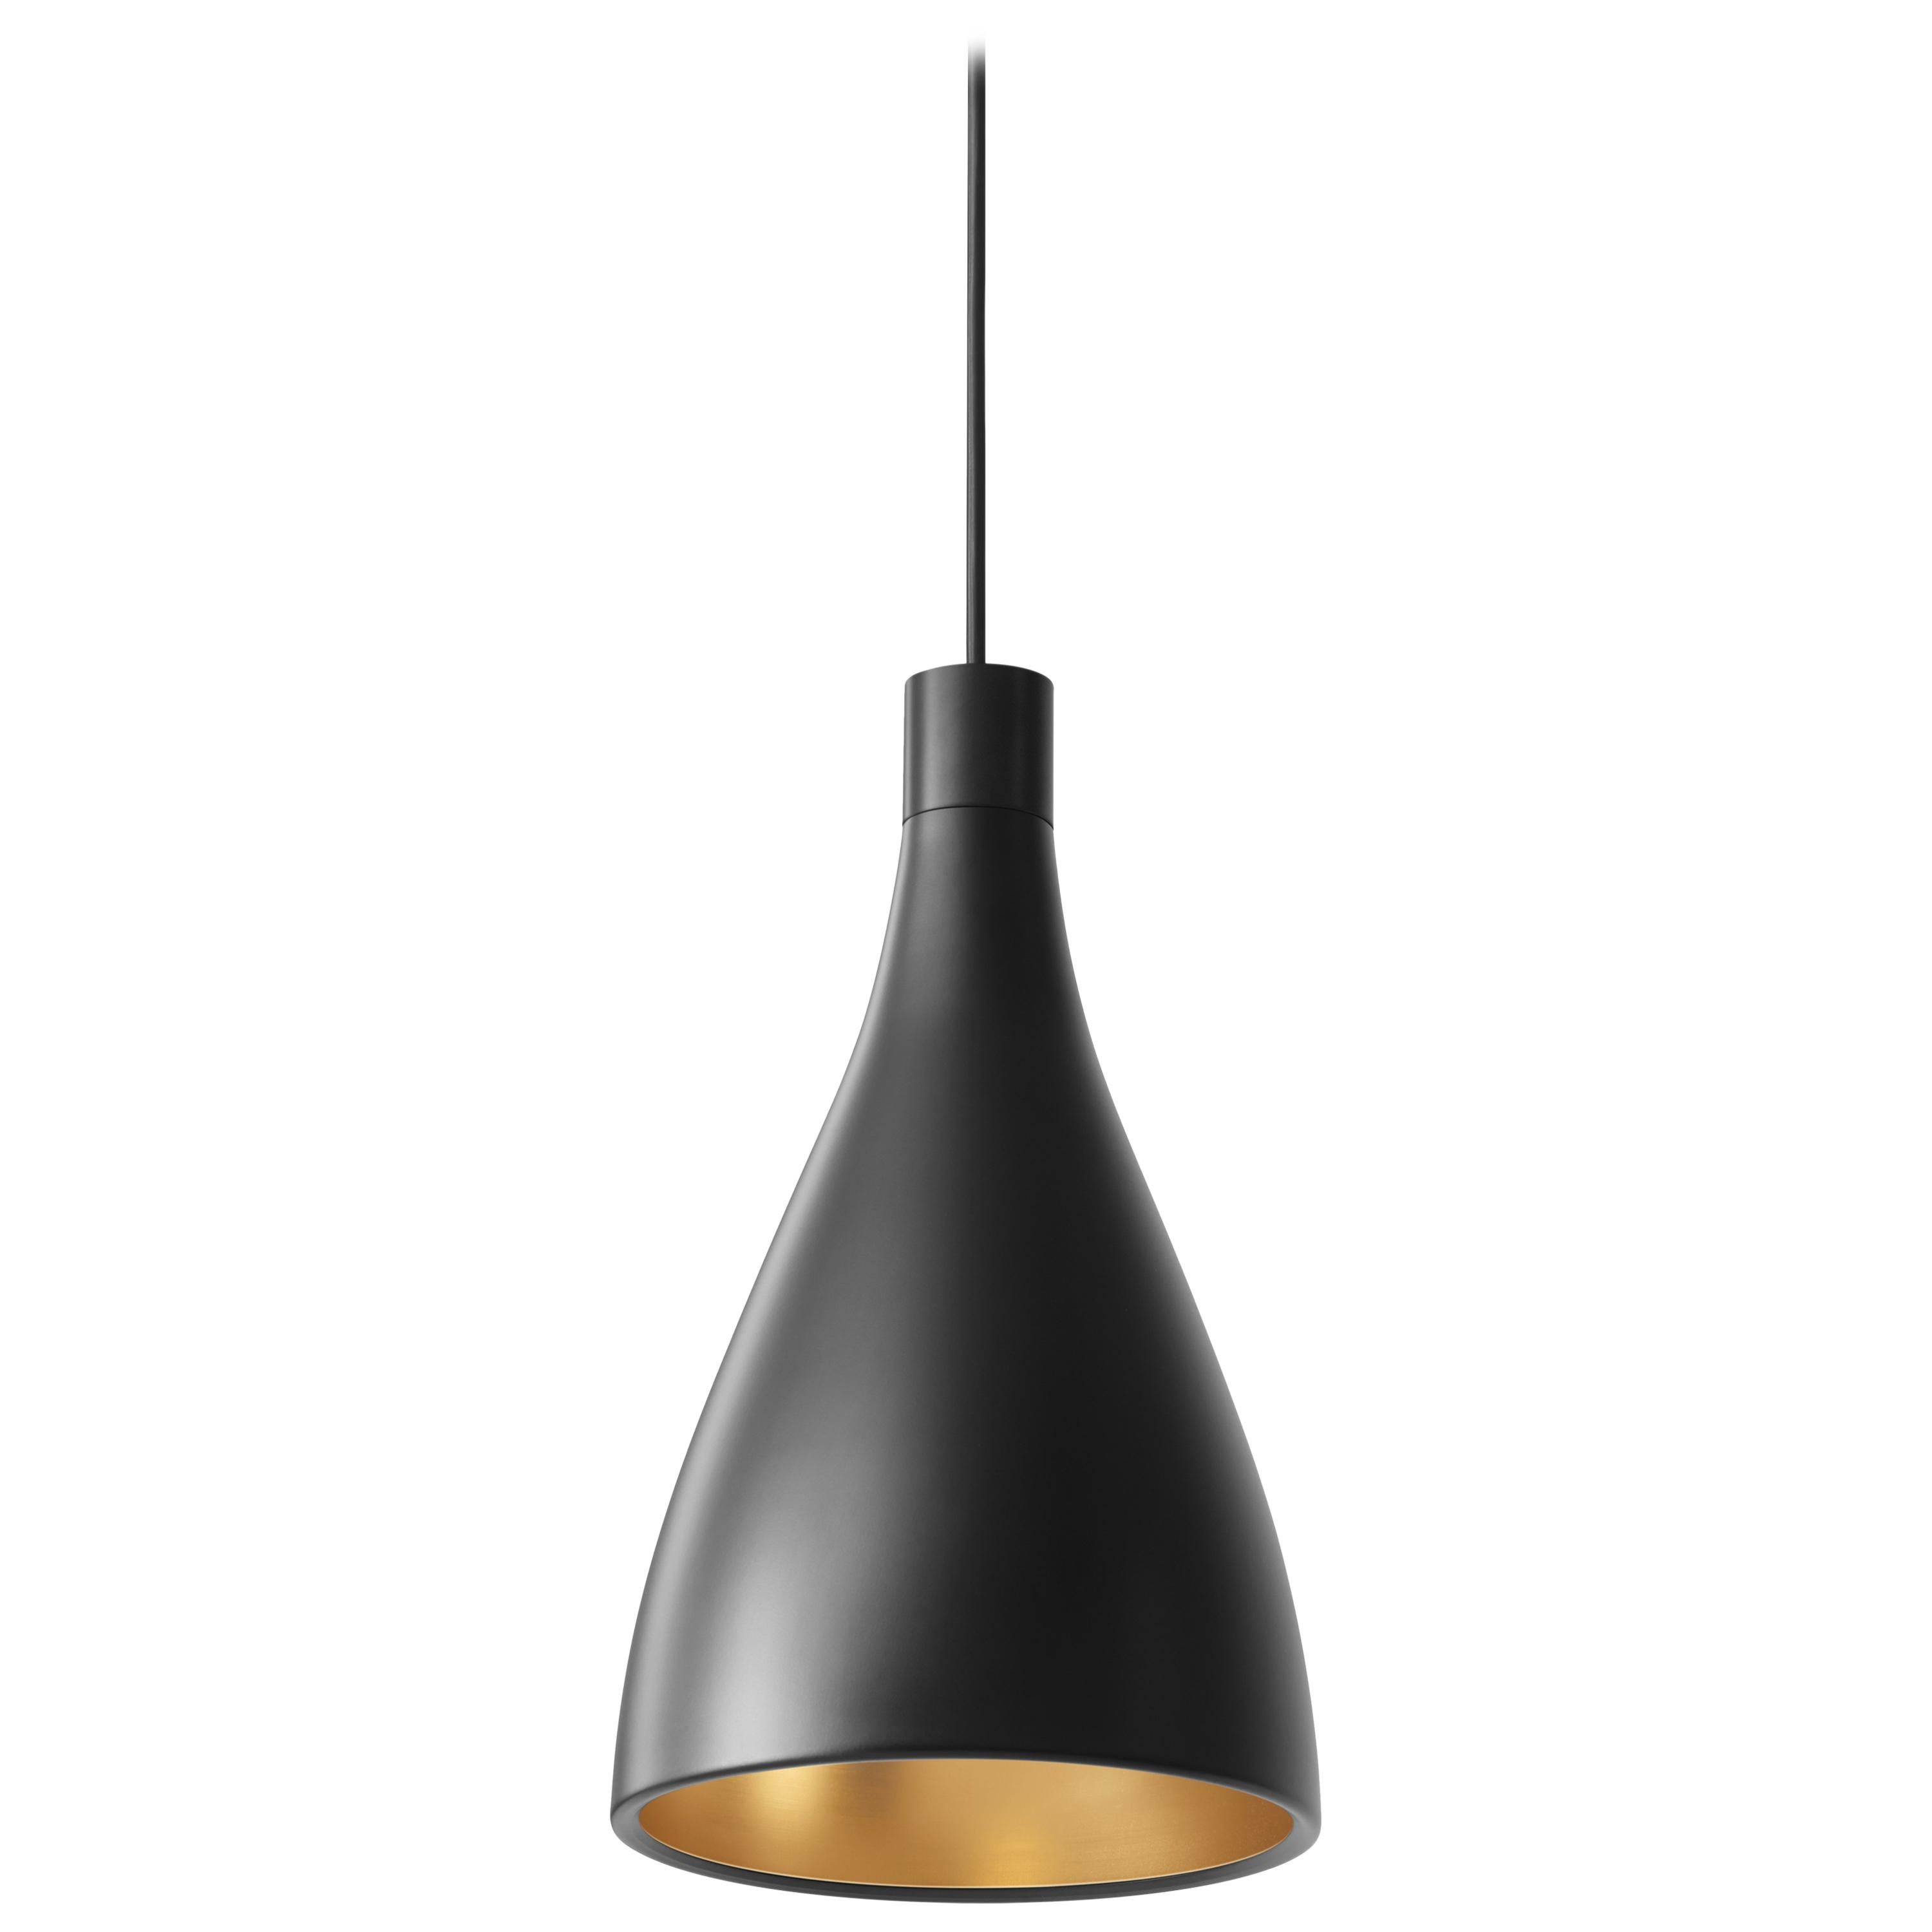 Narrow Swell Pendant Light in Black & Brass by Pablo Designs